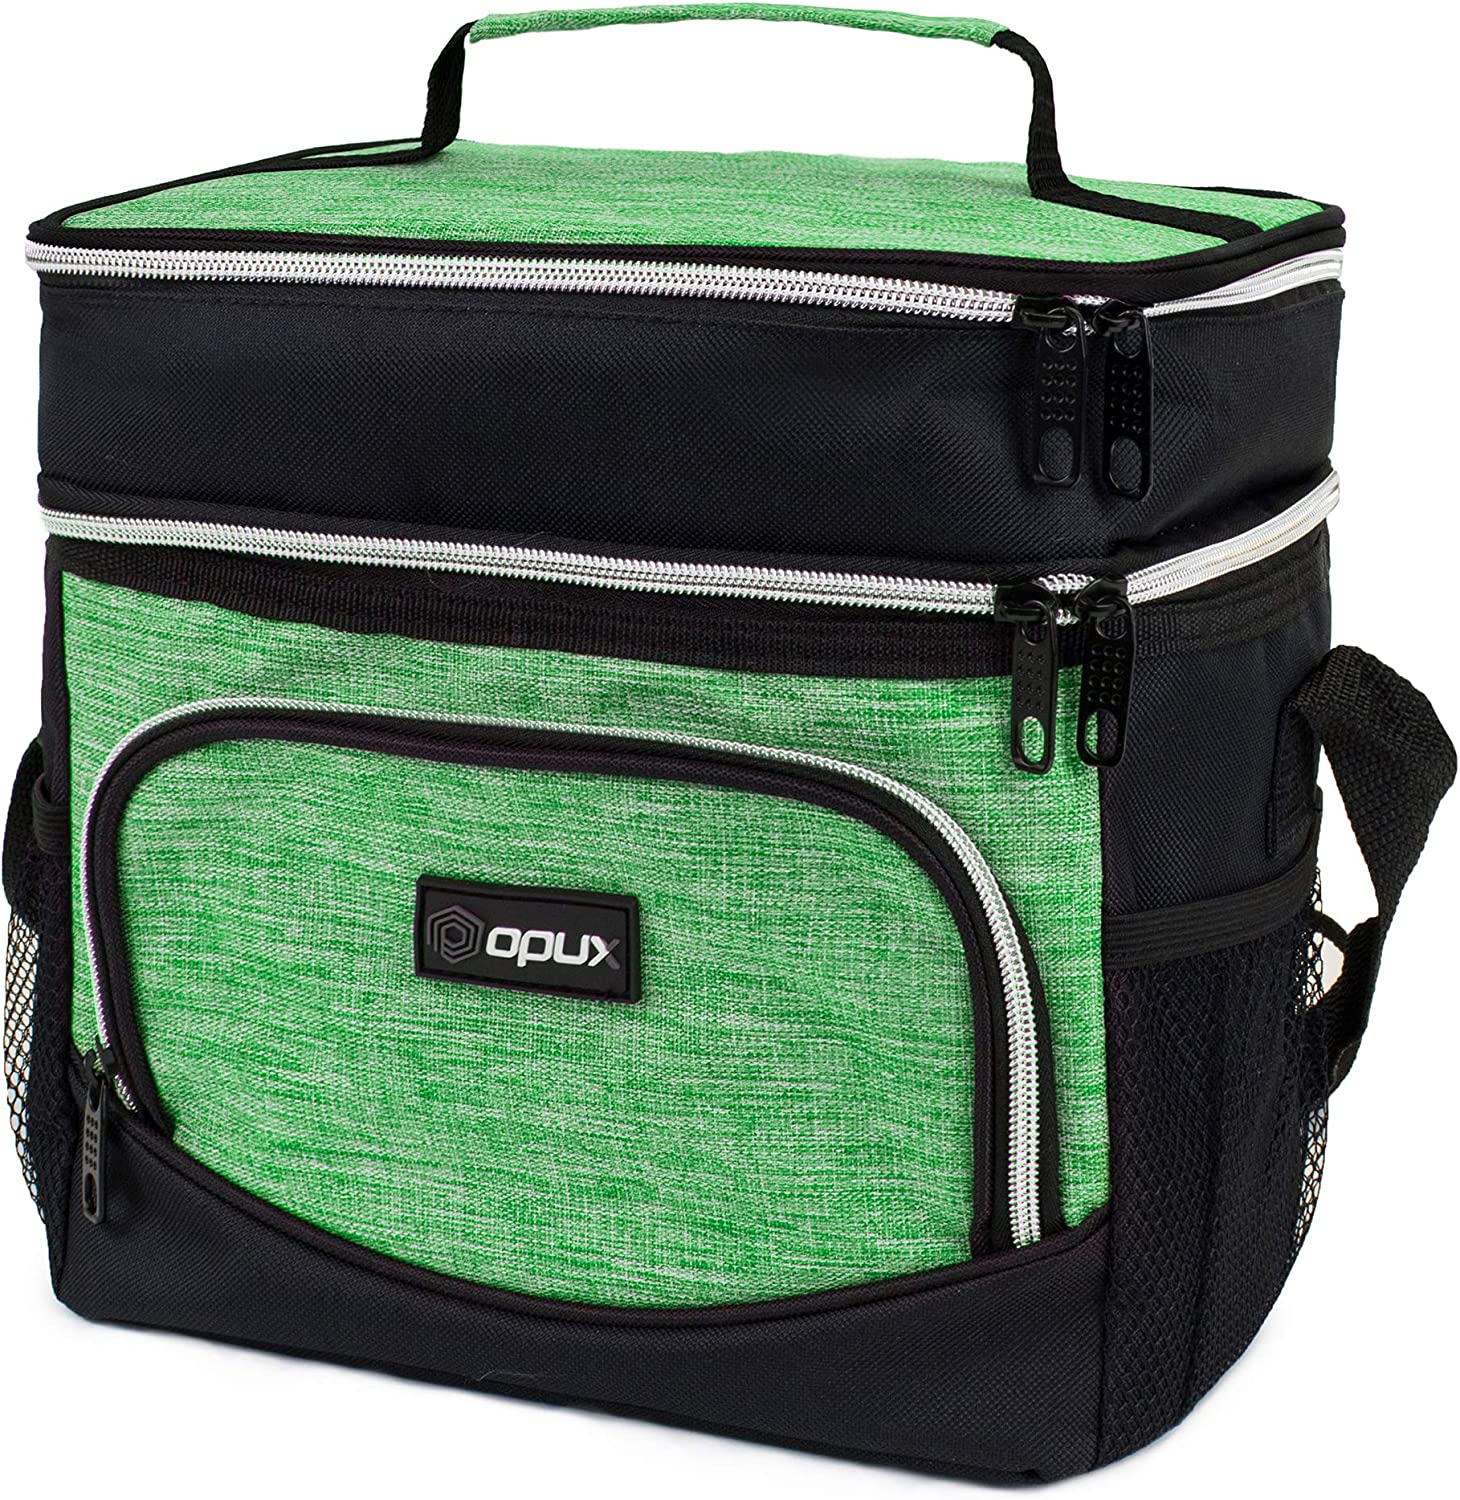 OPUX Insulated Dual Compartment Lunch Box for Men Women   Double Deck Leakproof Reusable Soft Lunch Bag Tote with Shoulder Strap for Work Office School Kid   Lunch Pail, Fits 12 Cans, Heather Green